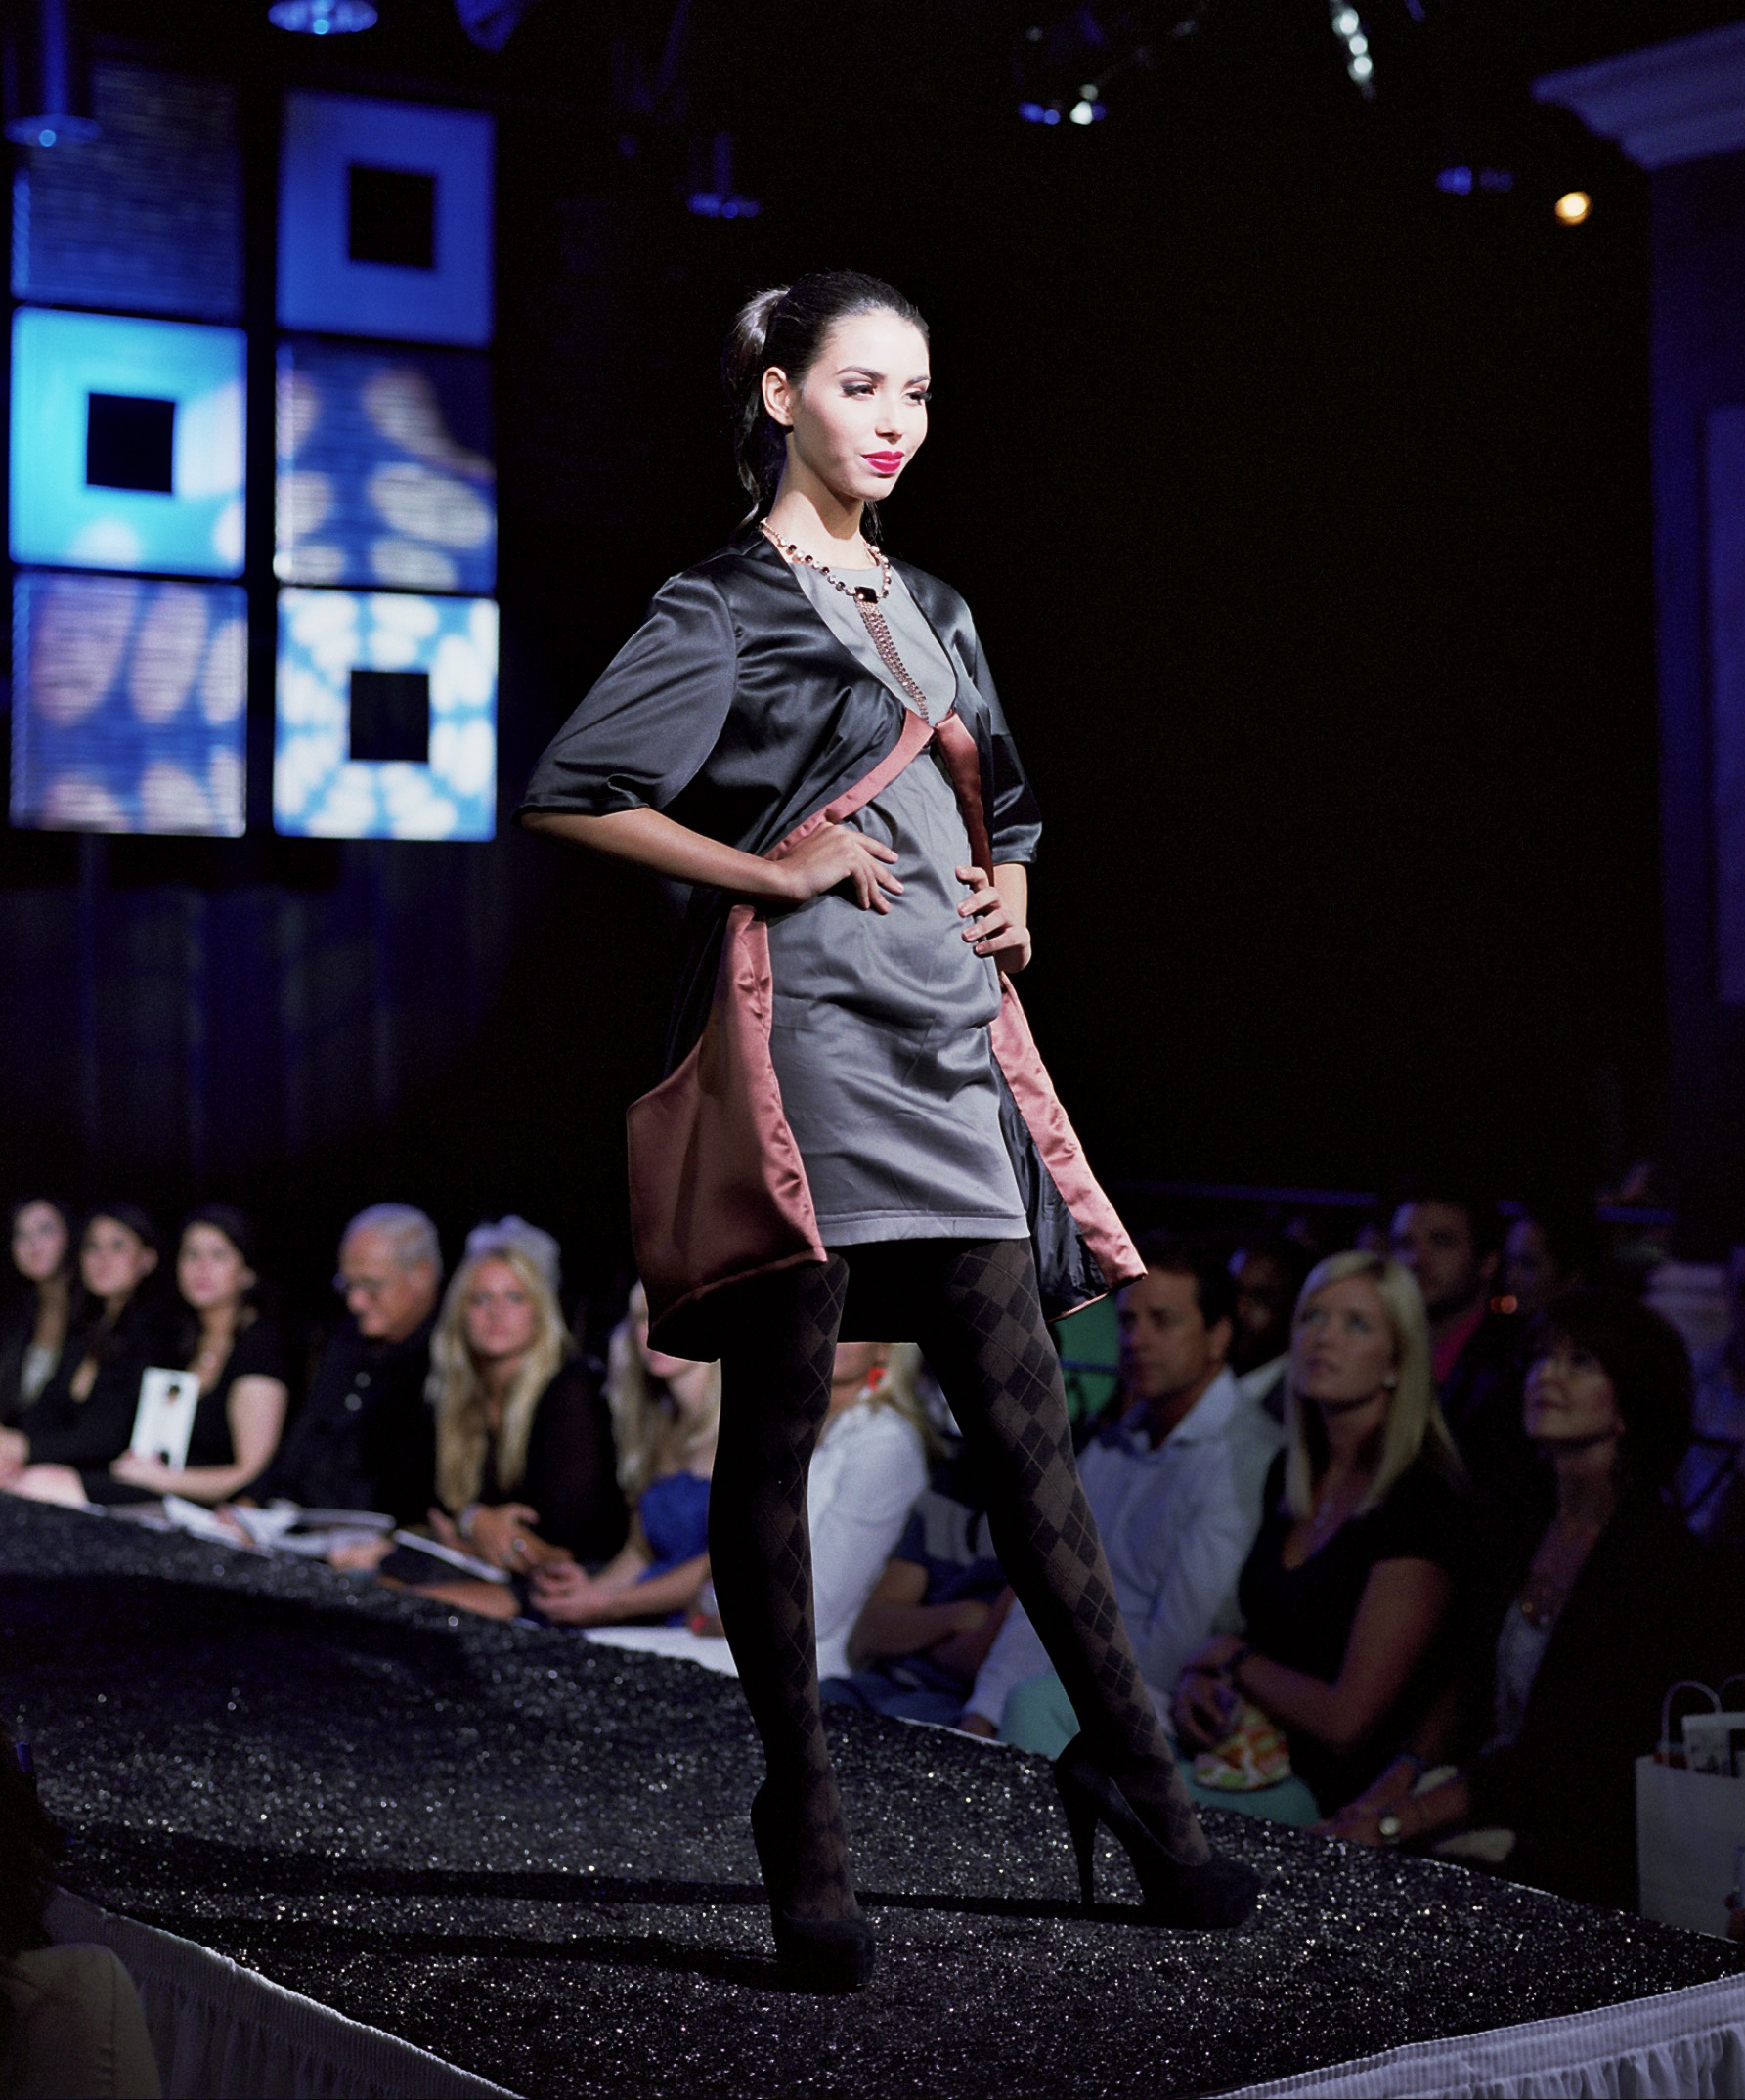 Orlando Fashion Week 2013 – Save the Date